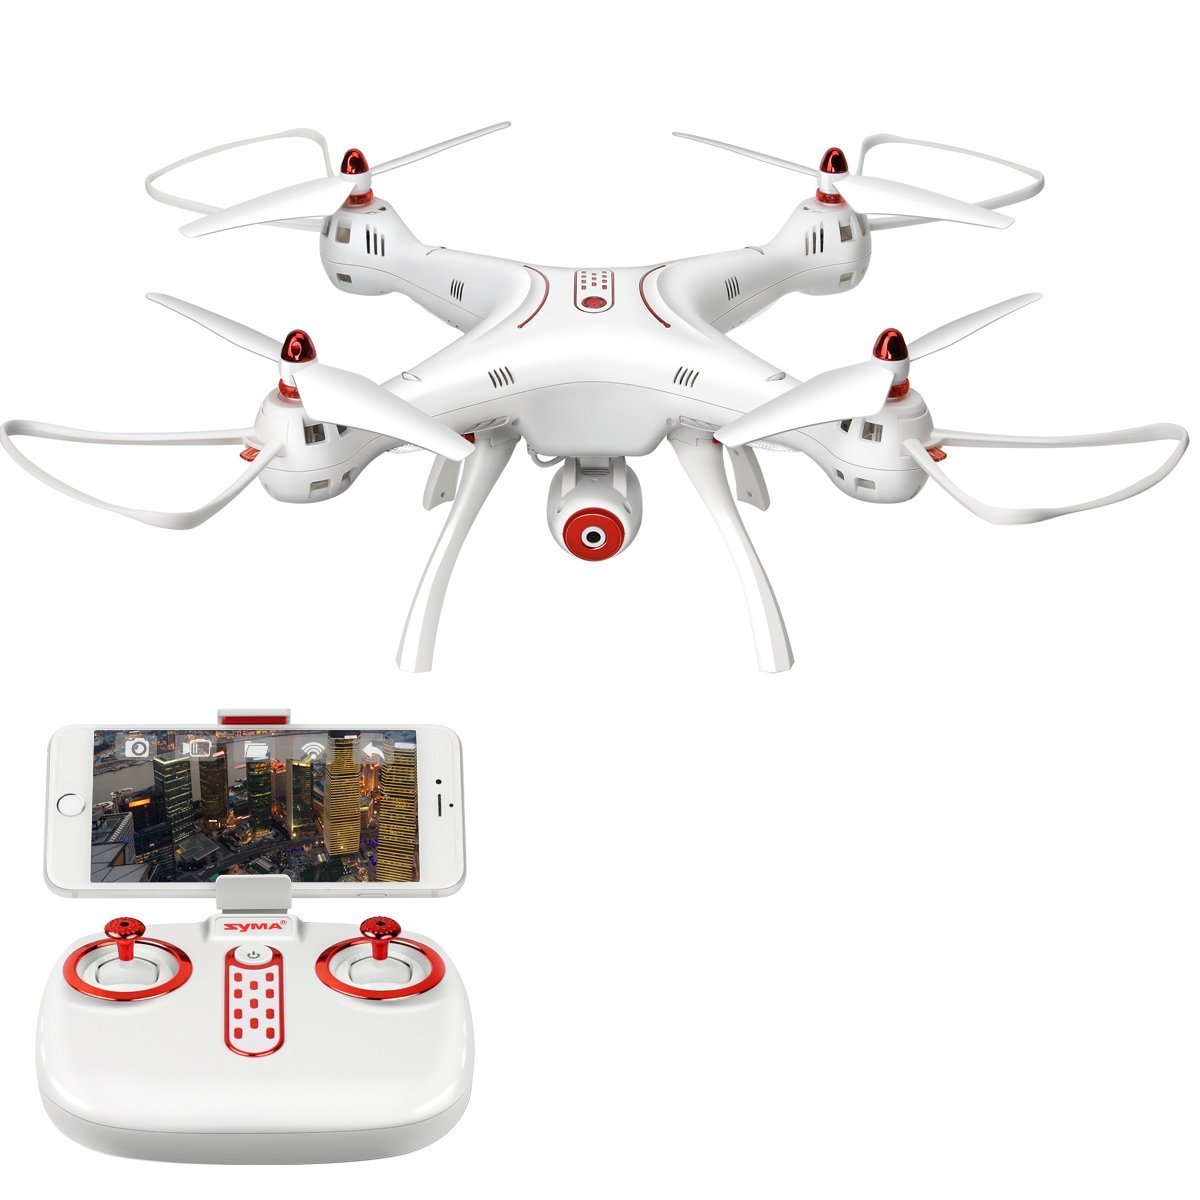 LiDi RC Syma X8 series RC Drone Quadcopter (X8SW): Amazon.es ...